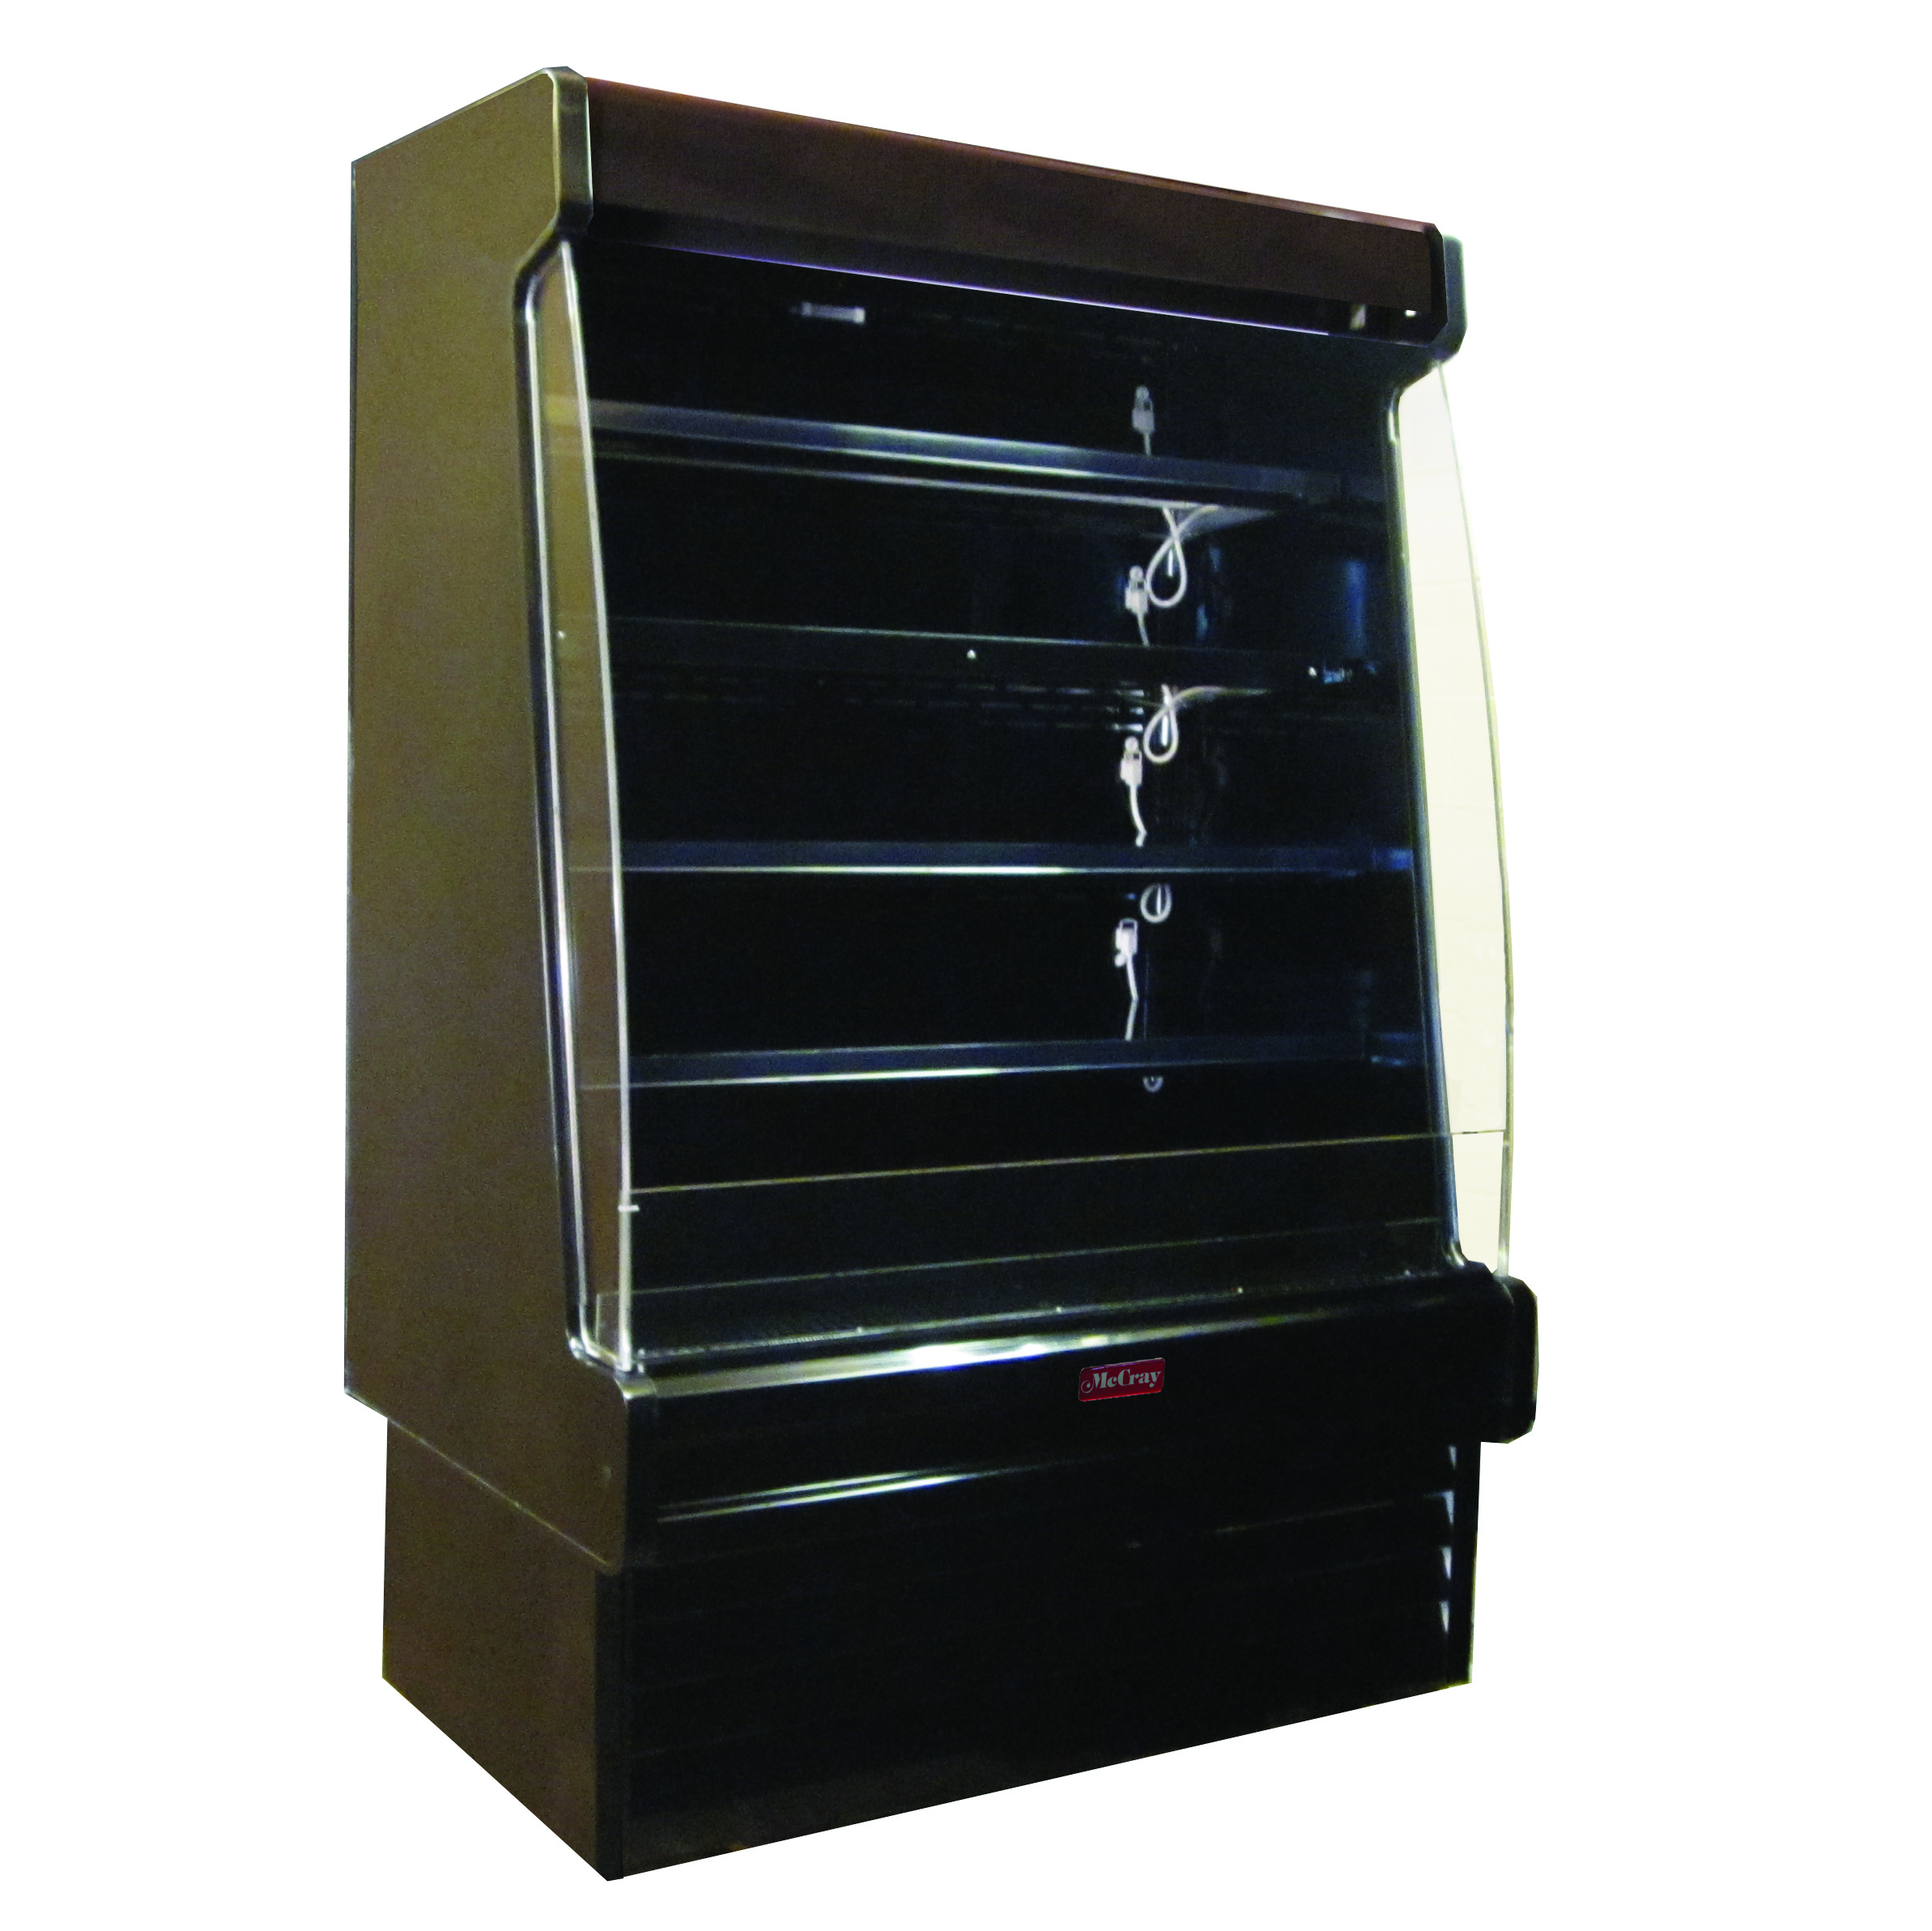 Howard-McCray R-OD35E-6S-B-LED merchandiser, open refrigerated display